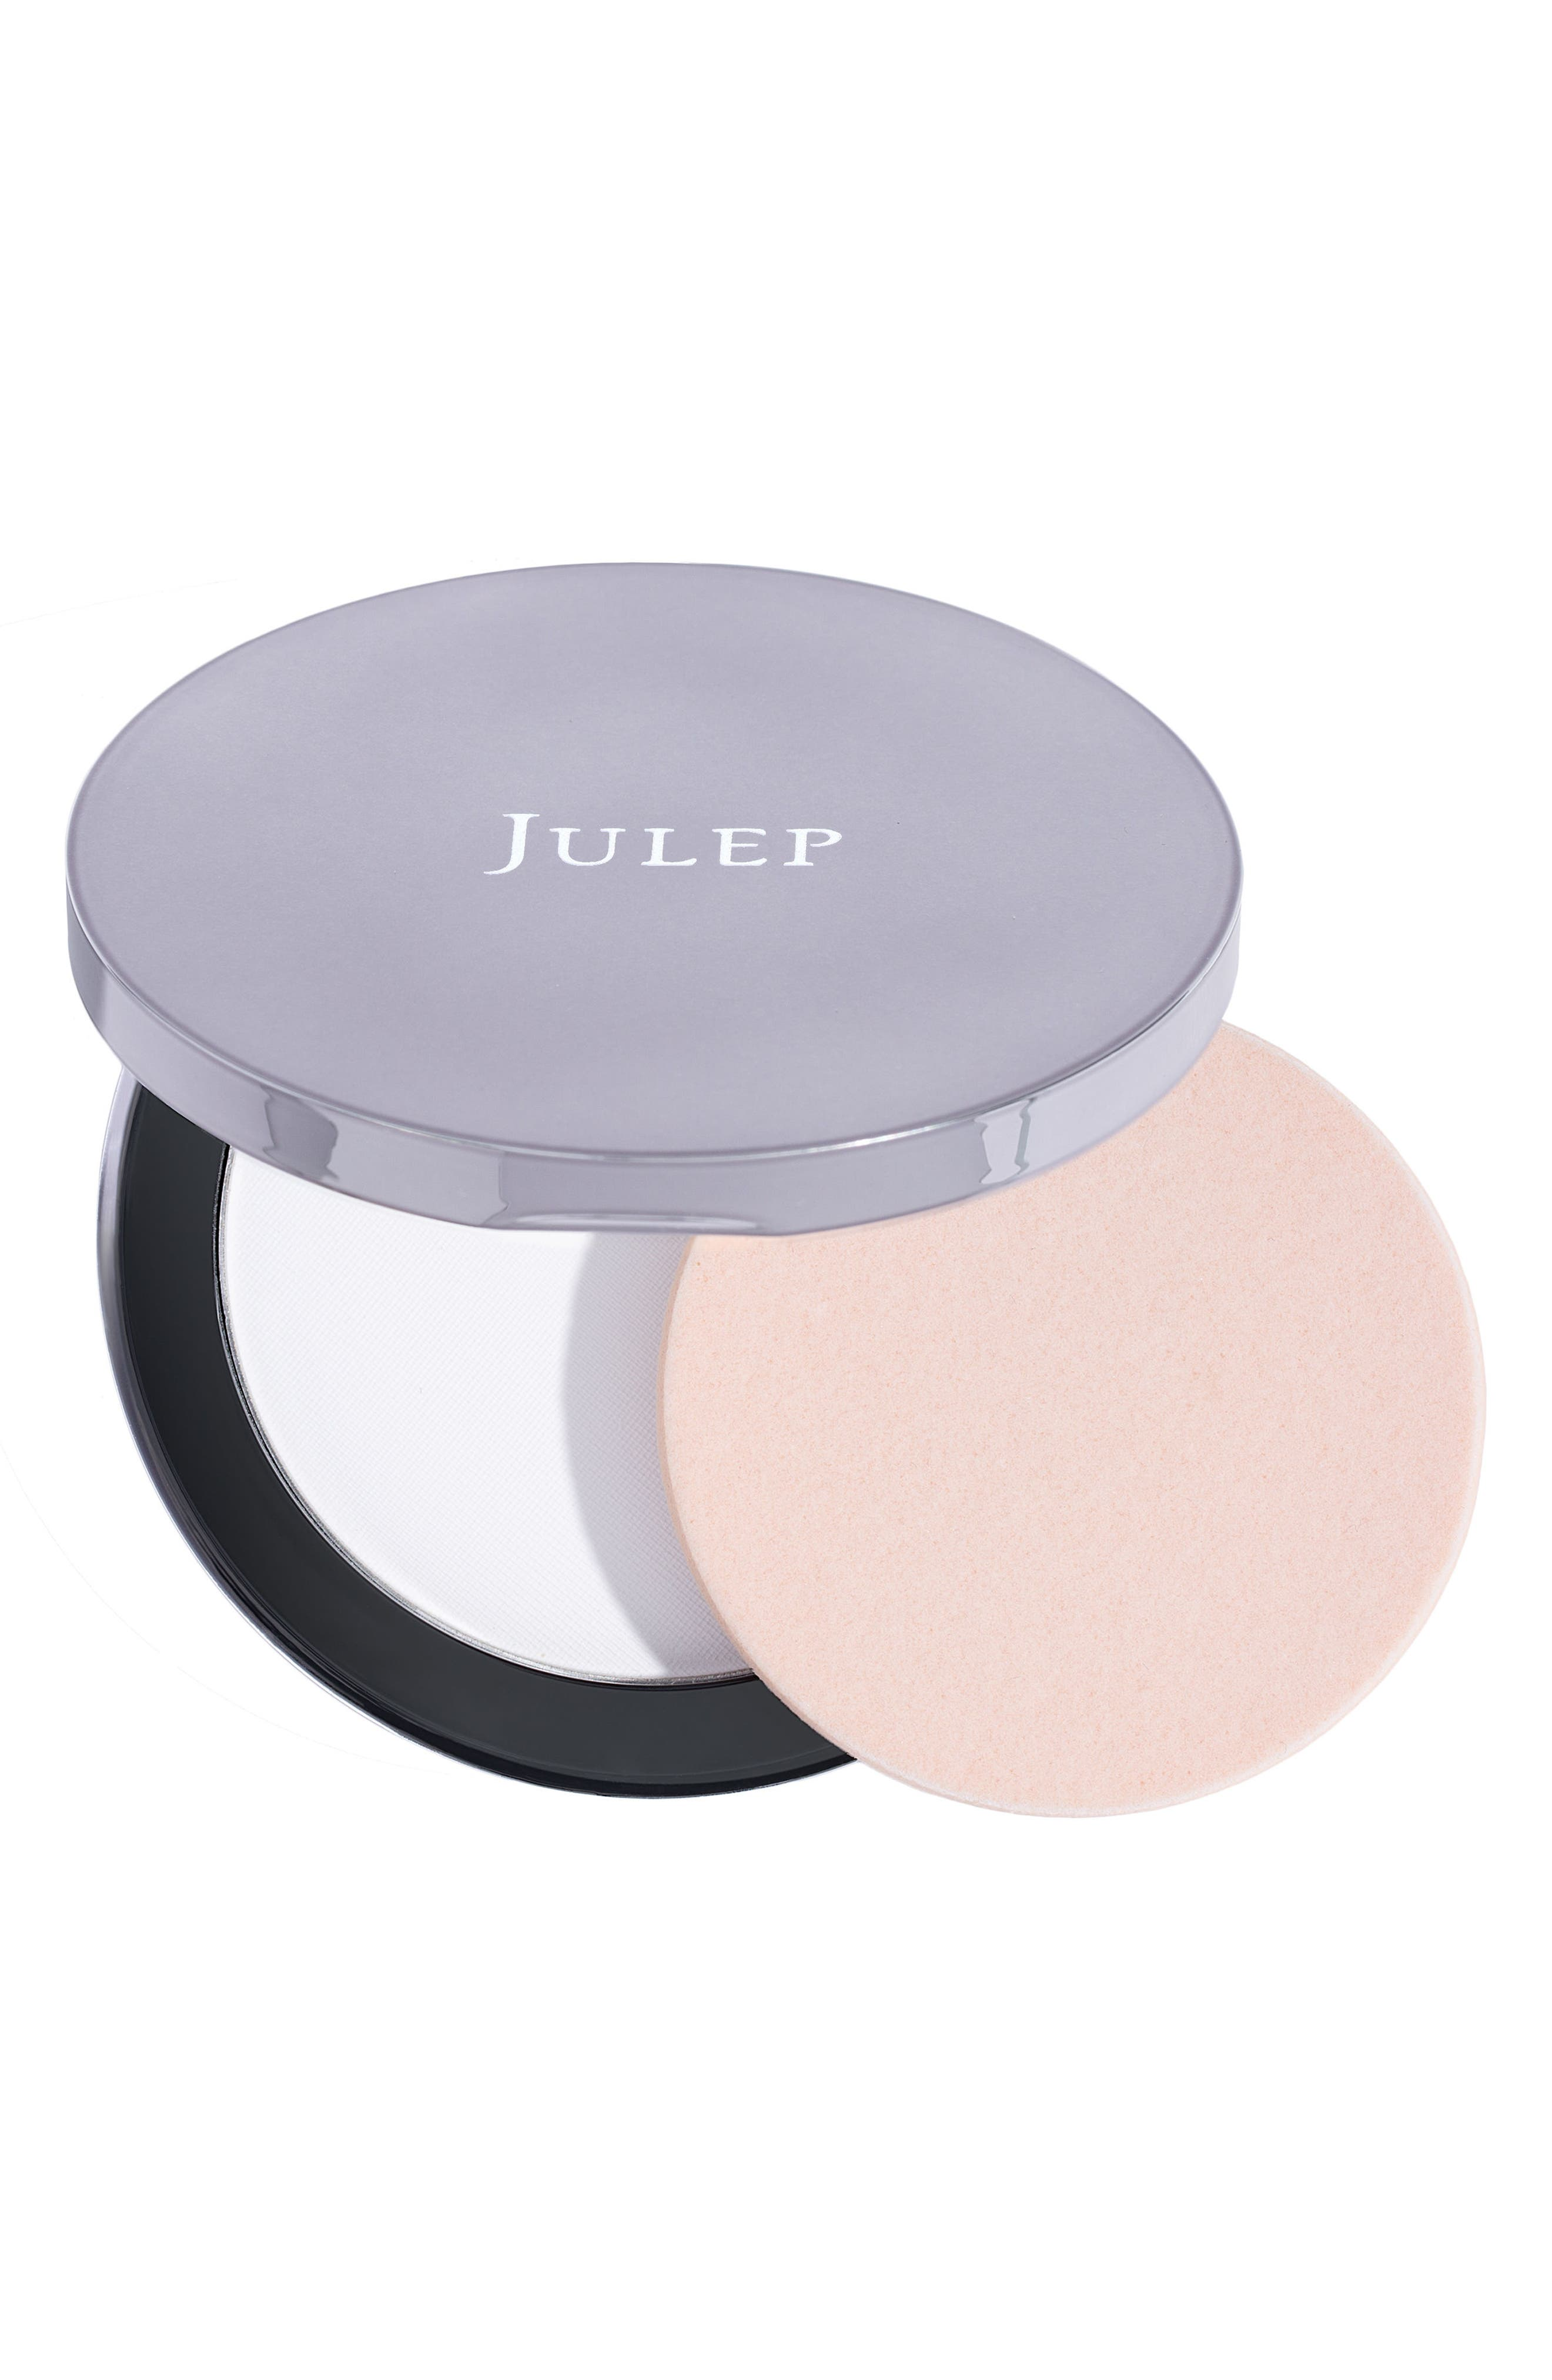 Julep<sup>™</sup> Insta-Filter Invisible Finishing Powder,                         Main,                         color, No Color